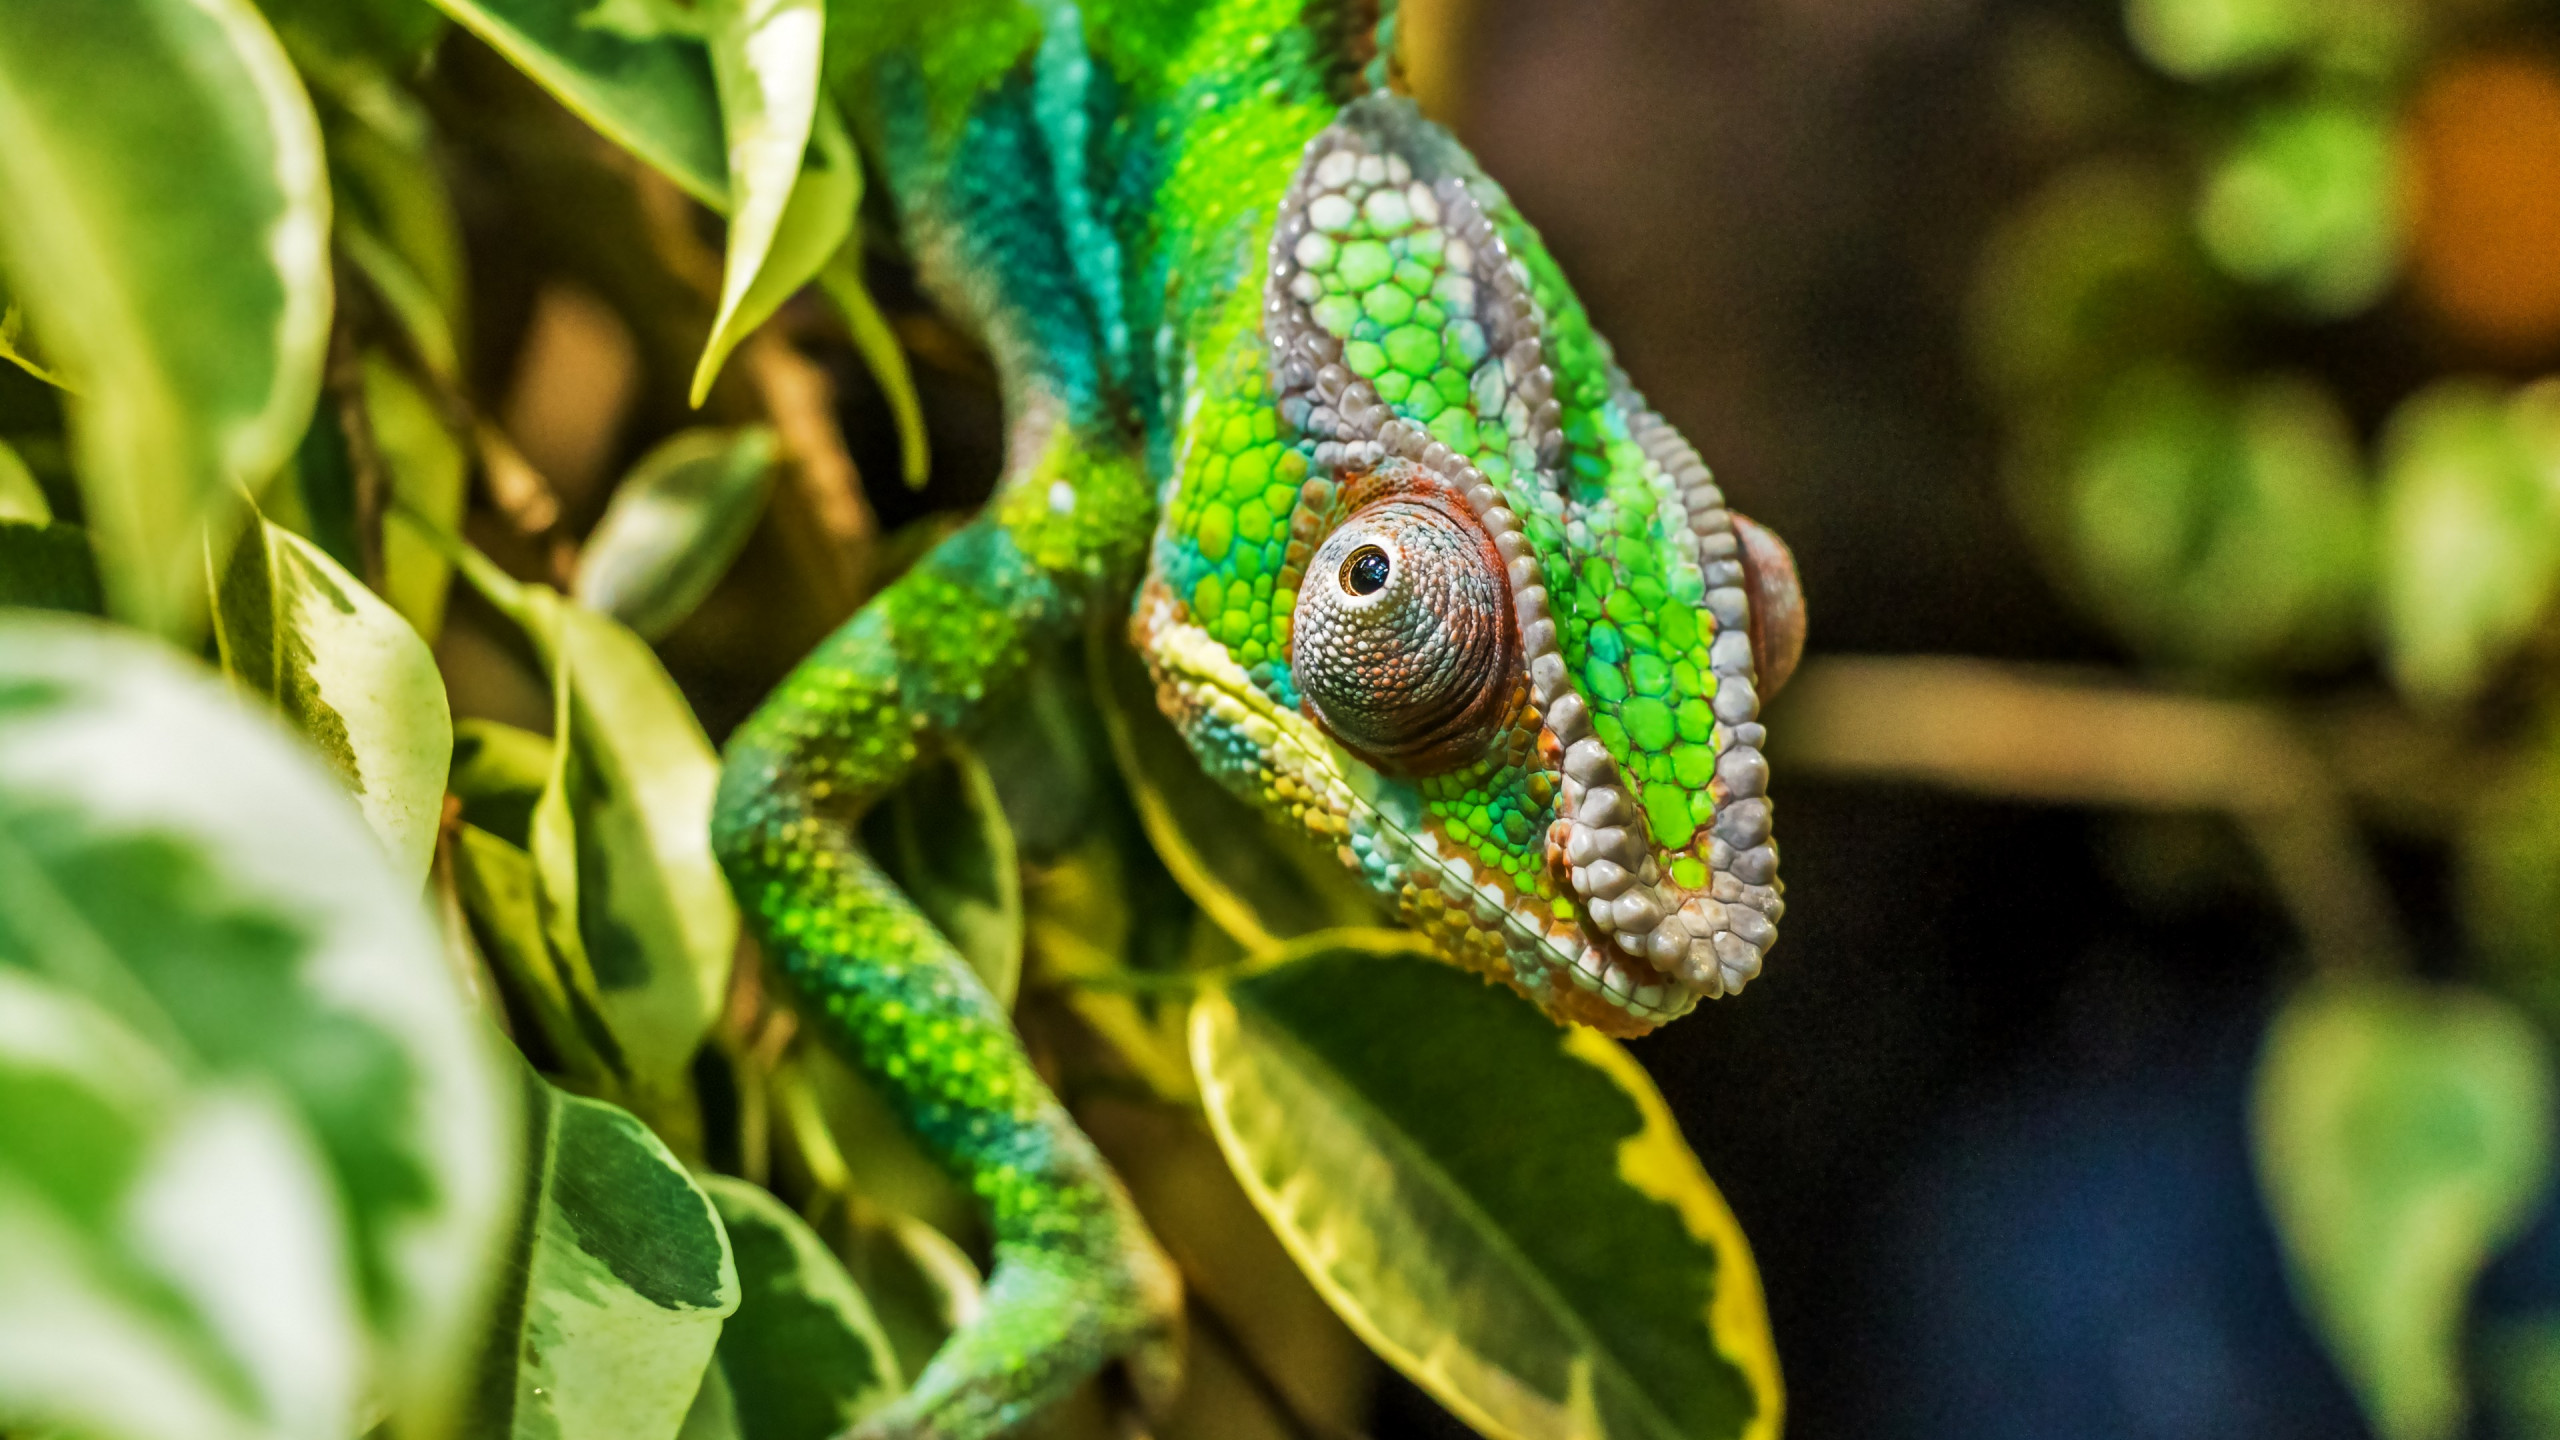 Panther chameleon reptile | 2560x1440 wallpaper